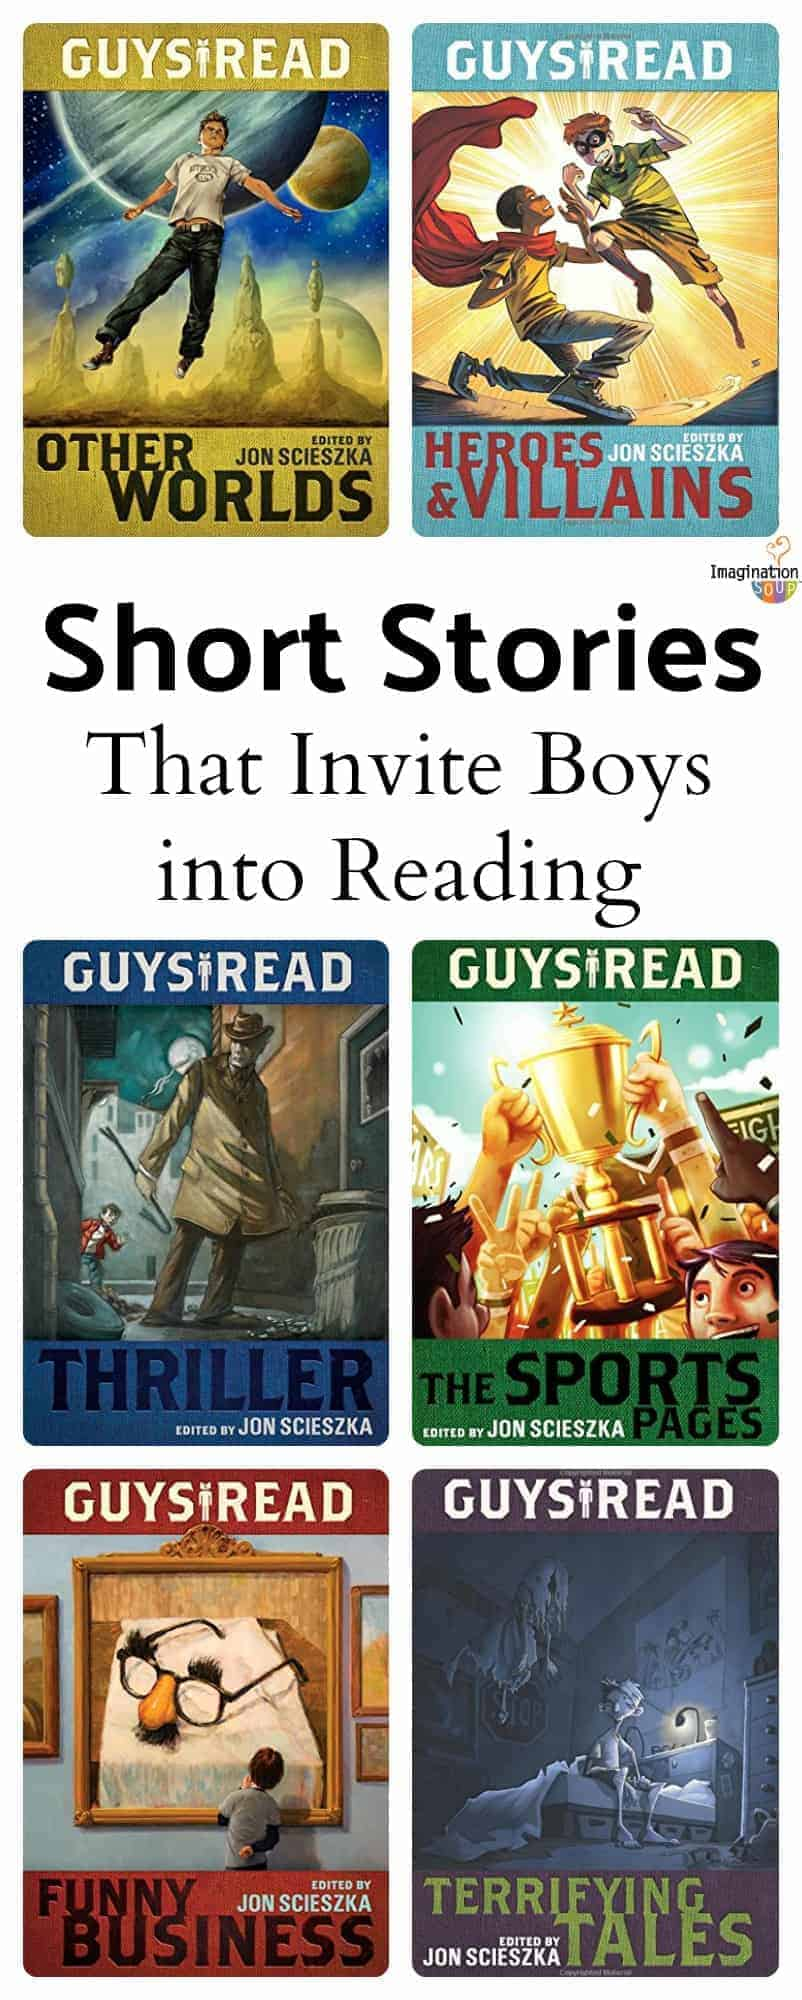 Guys Read Short Stories Invite Boys Into (a Different Kind of) Reading